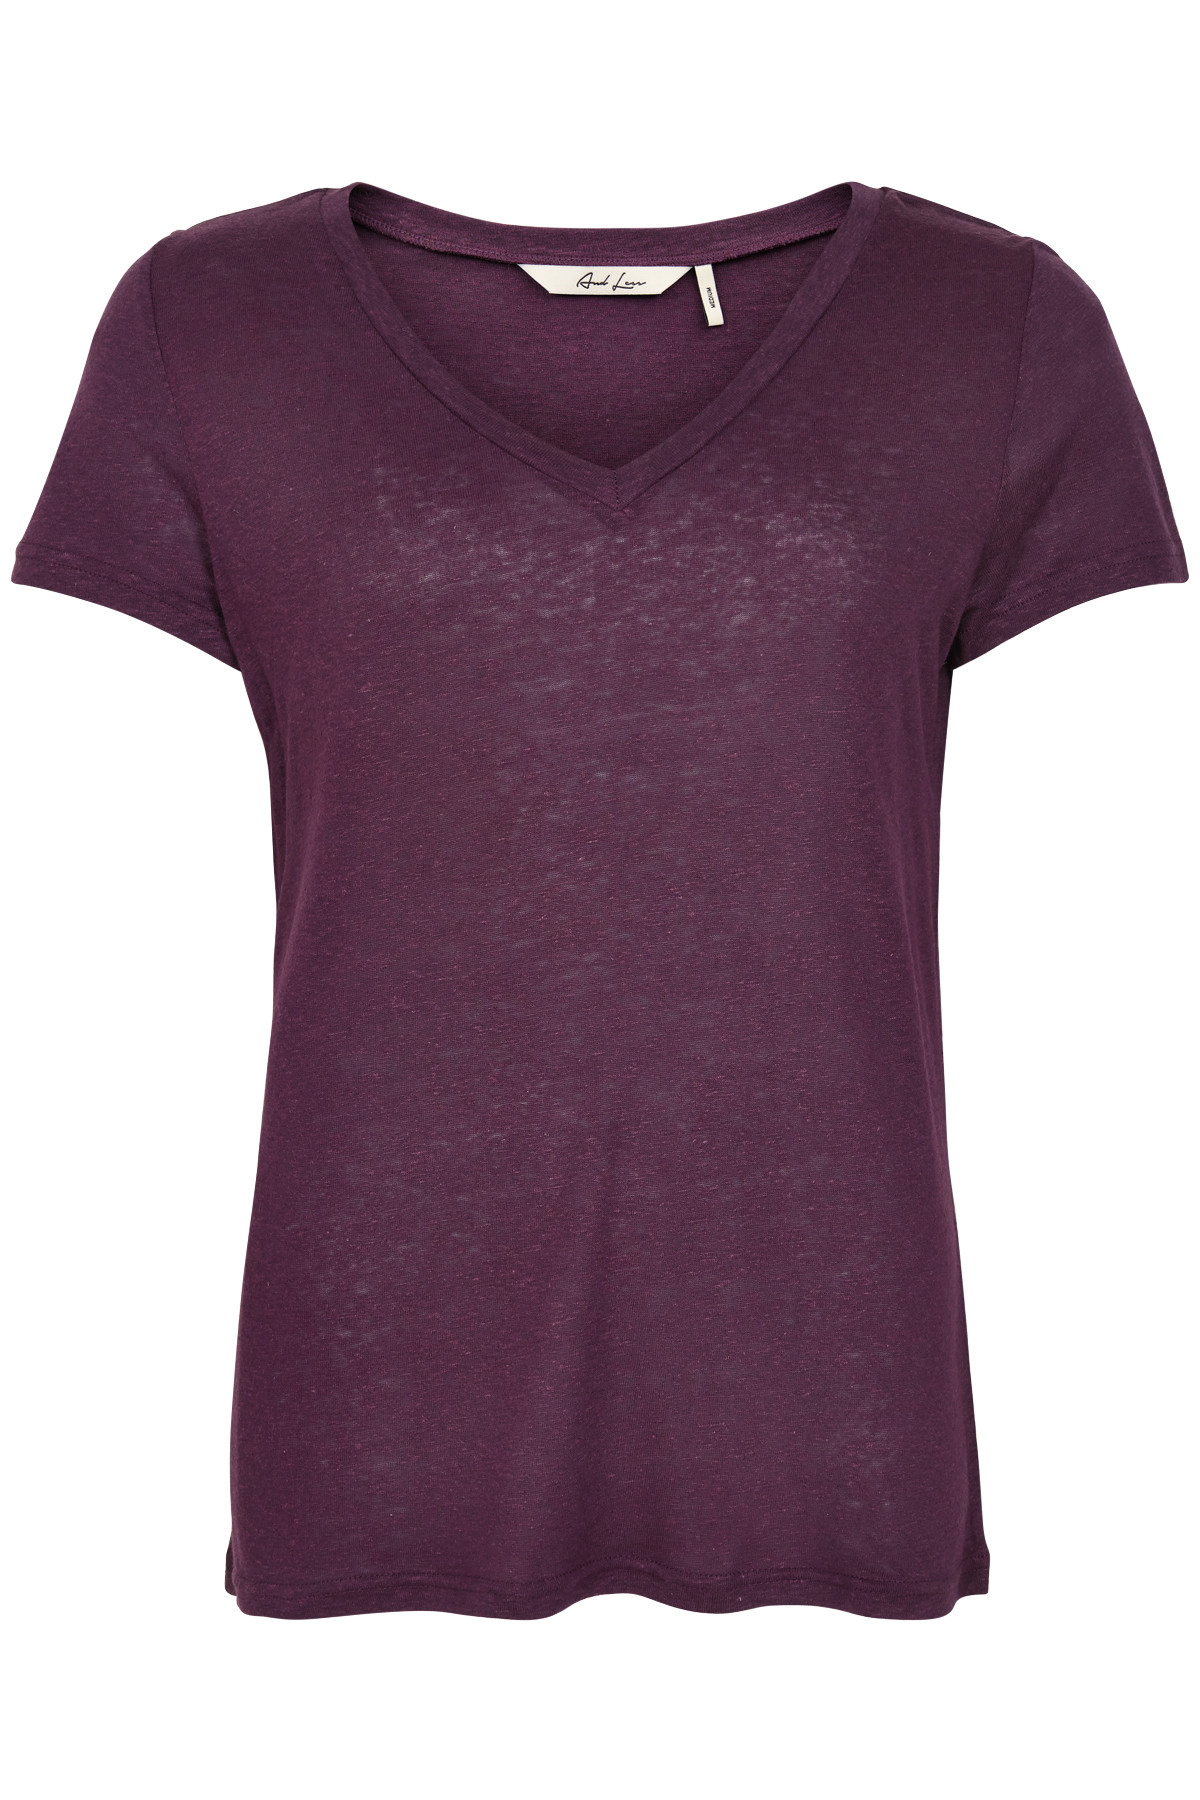 Image of   AND LESS ORSINO BLUSE 5419301 (Plum Perfect, L)